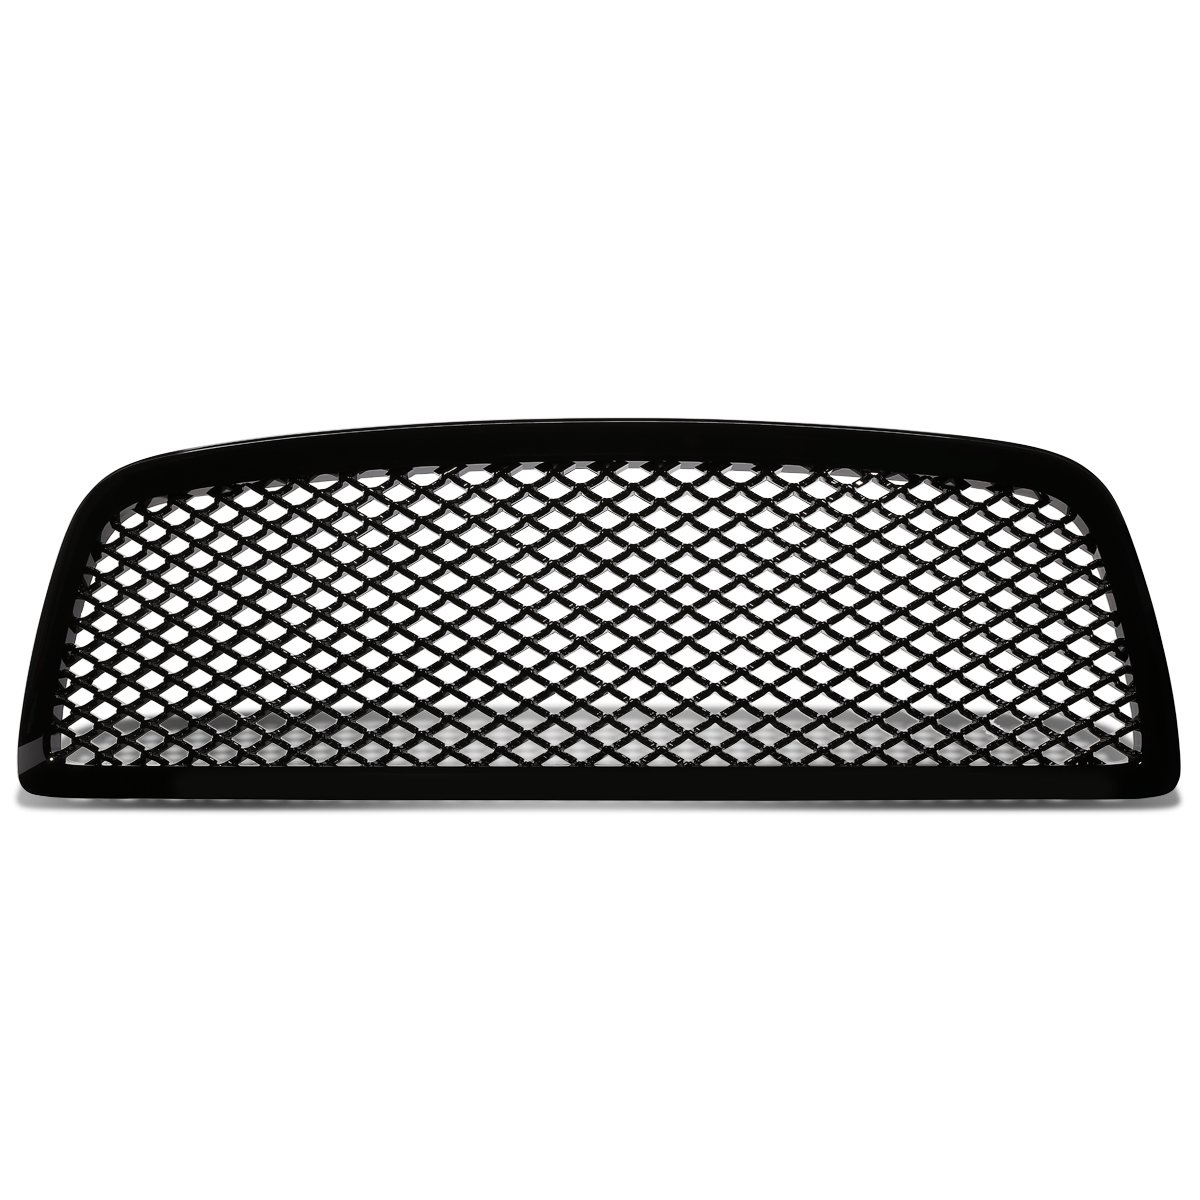 For Dodge Ram ABS Plastic Sport Mesh Front Bumper Grille (Black) - 4th Gen DS DJ Auto Dynasty GRZT-RAM-0910-BK